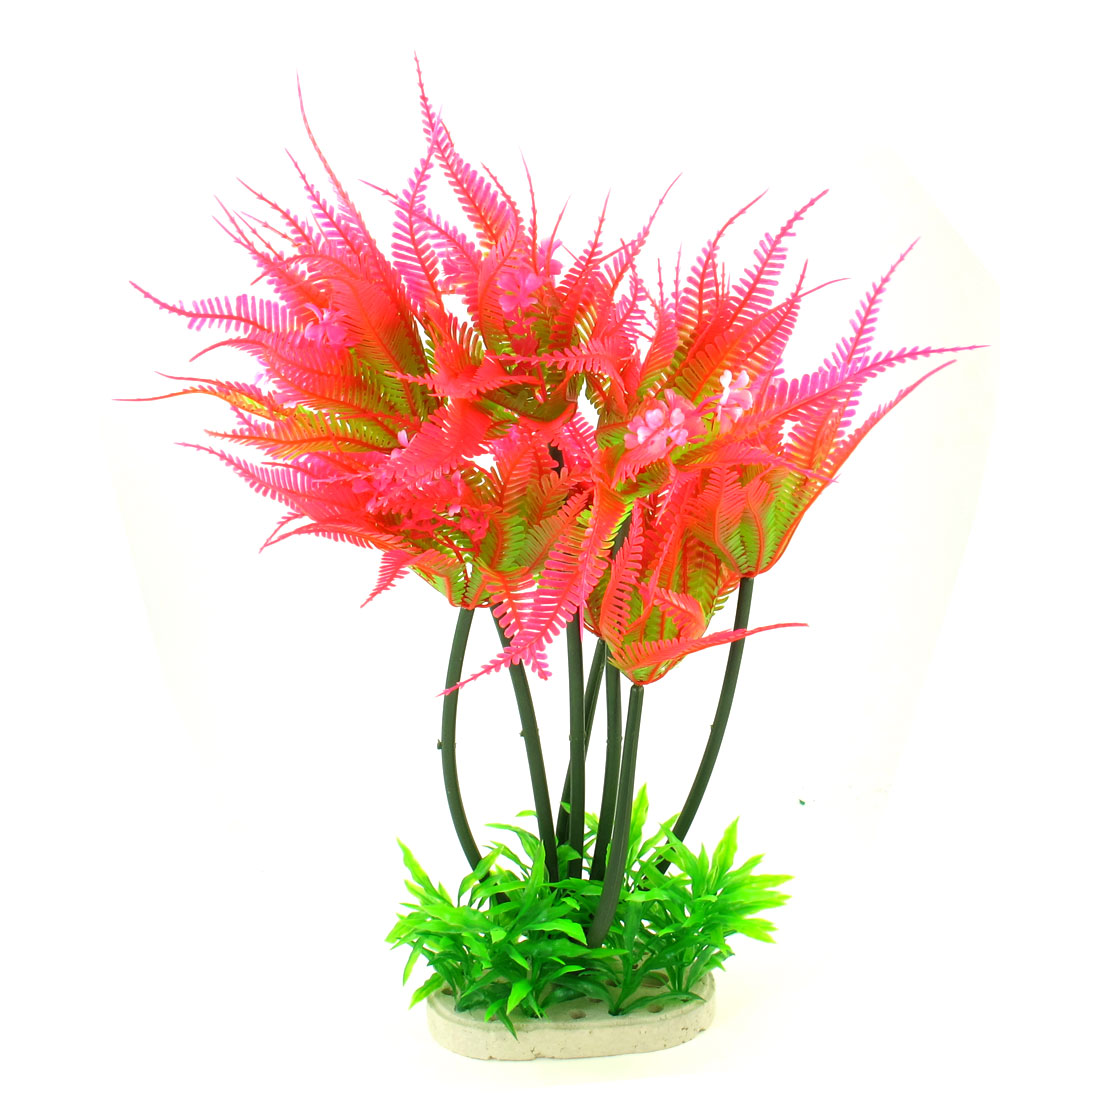 45cm High Ceramic Base Green Fuchsia Plastic Plant Water Grass for Aquarium